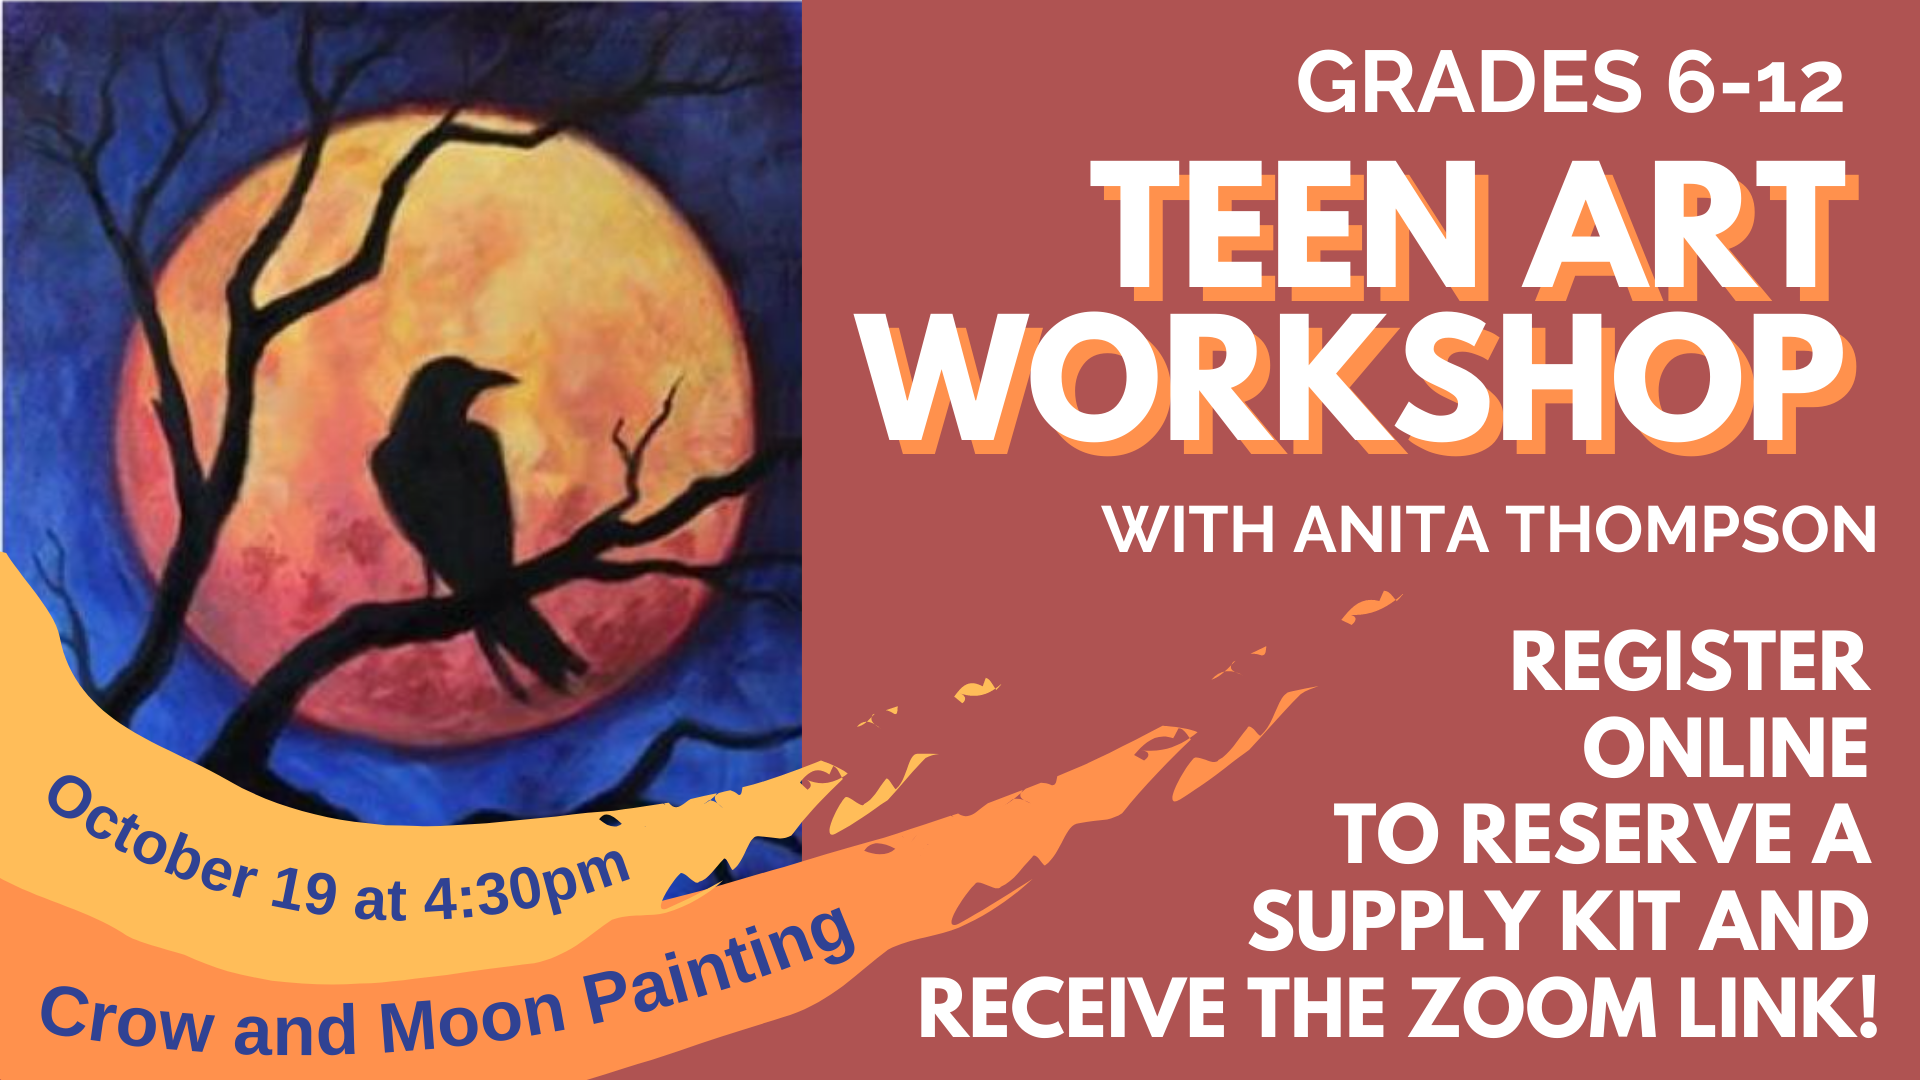 Teen Art Workshop: Raven and Moon Painting